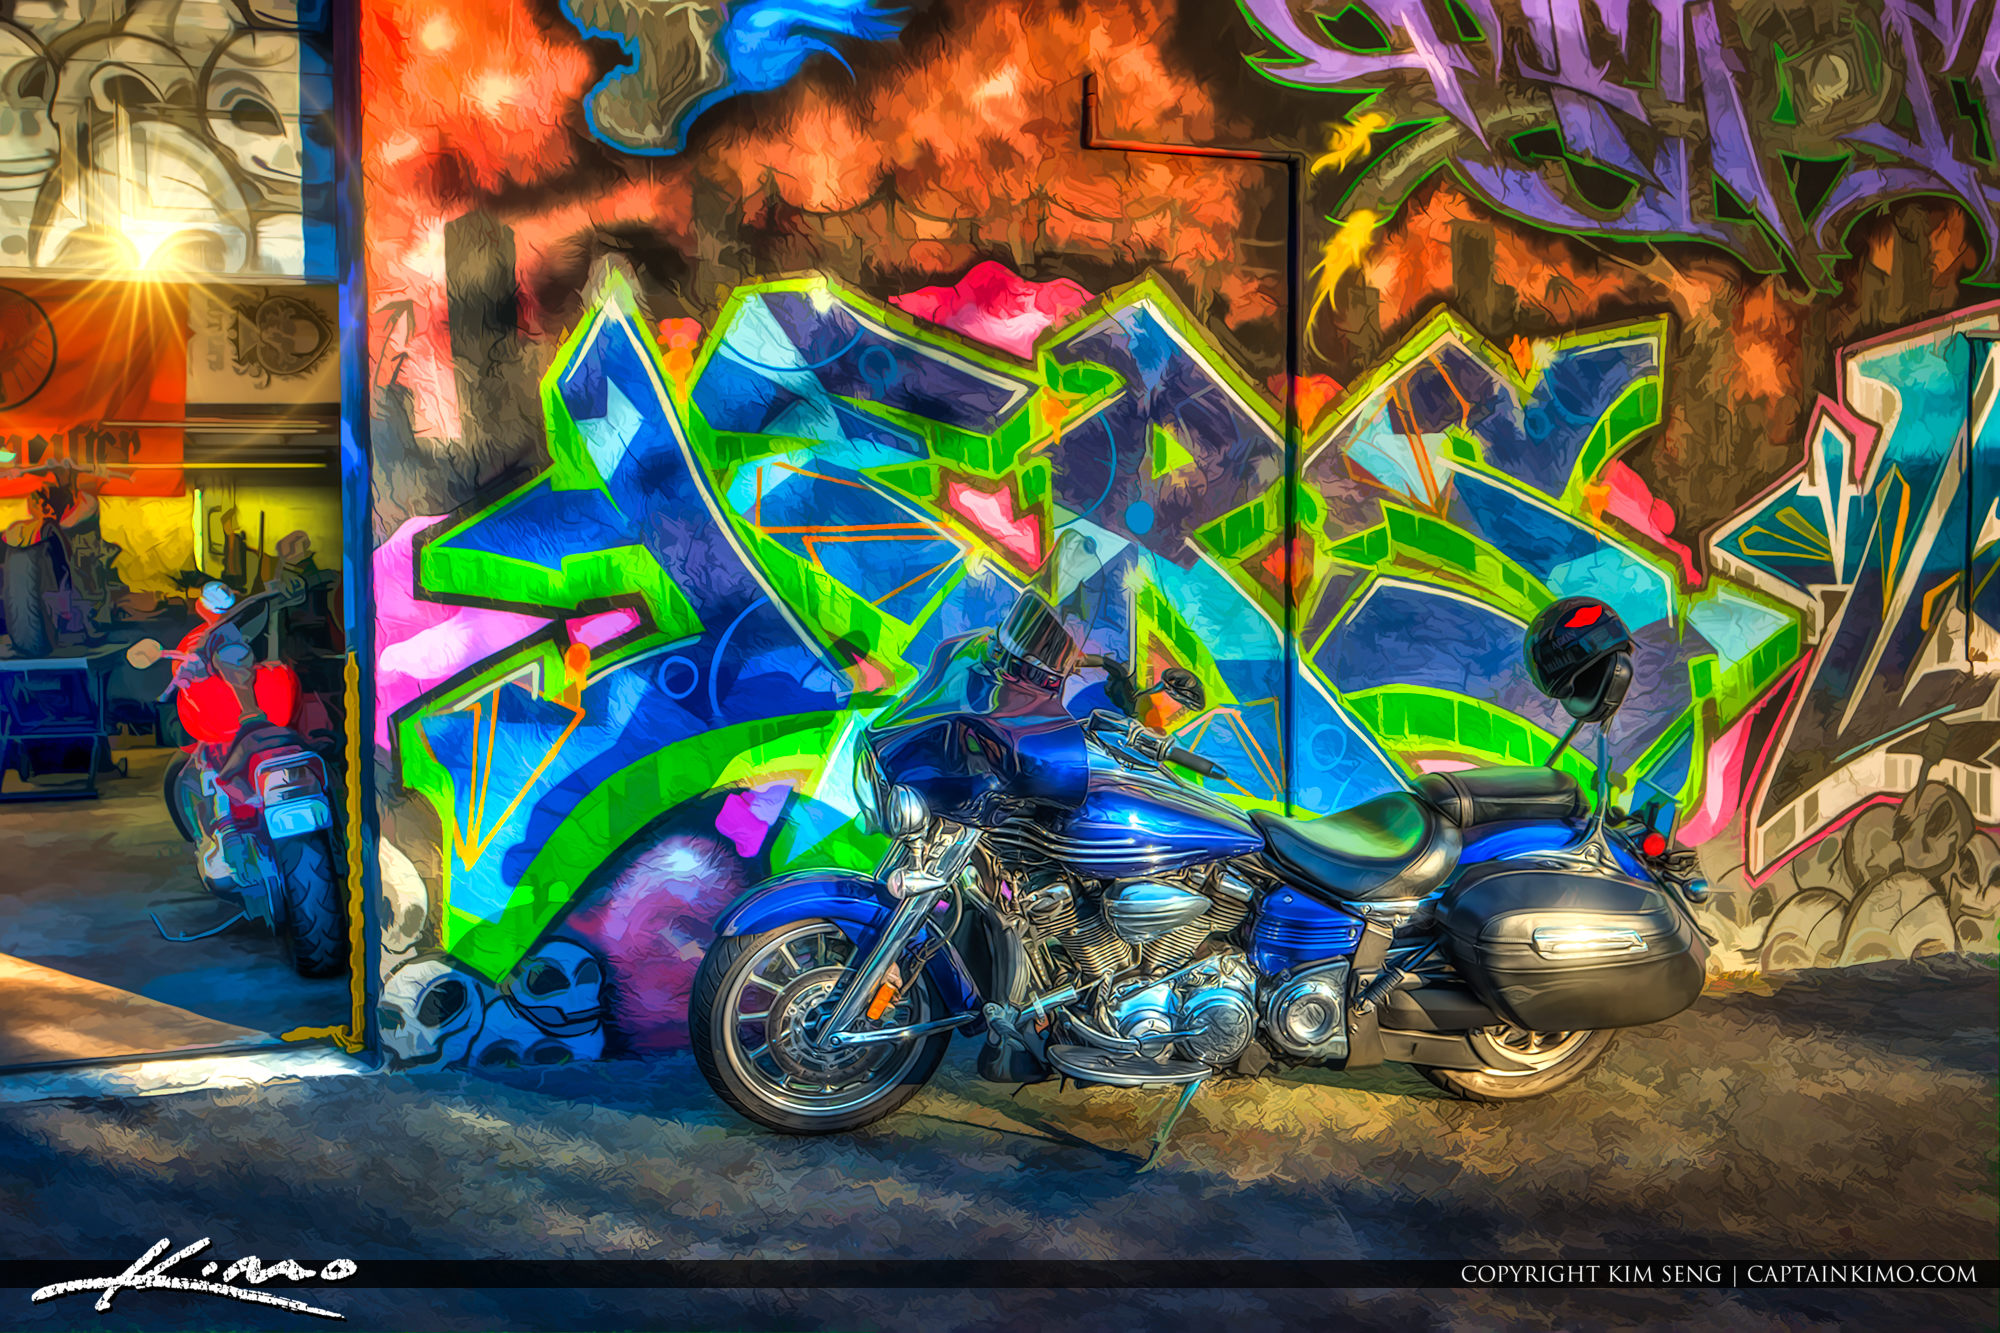 Motorcycle with Graffiti Art West Palm Beach